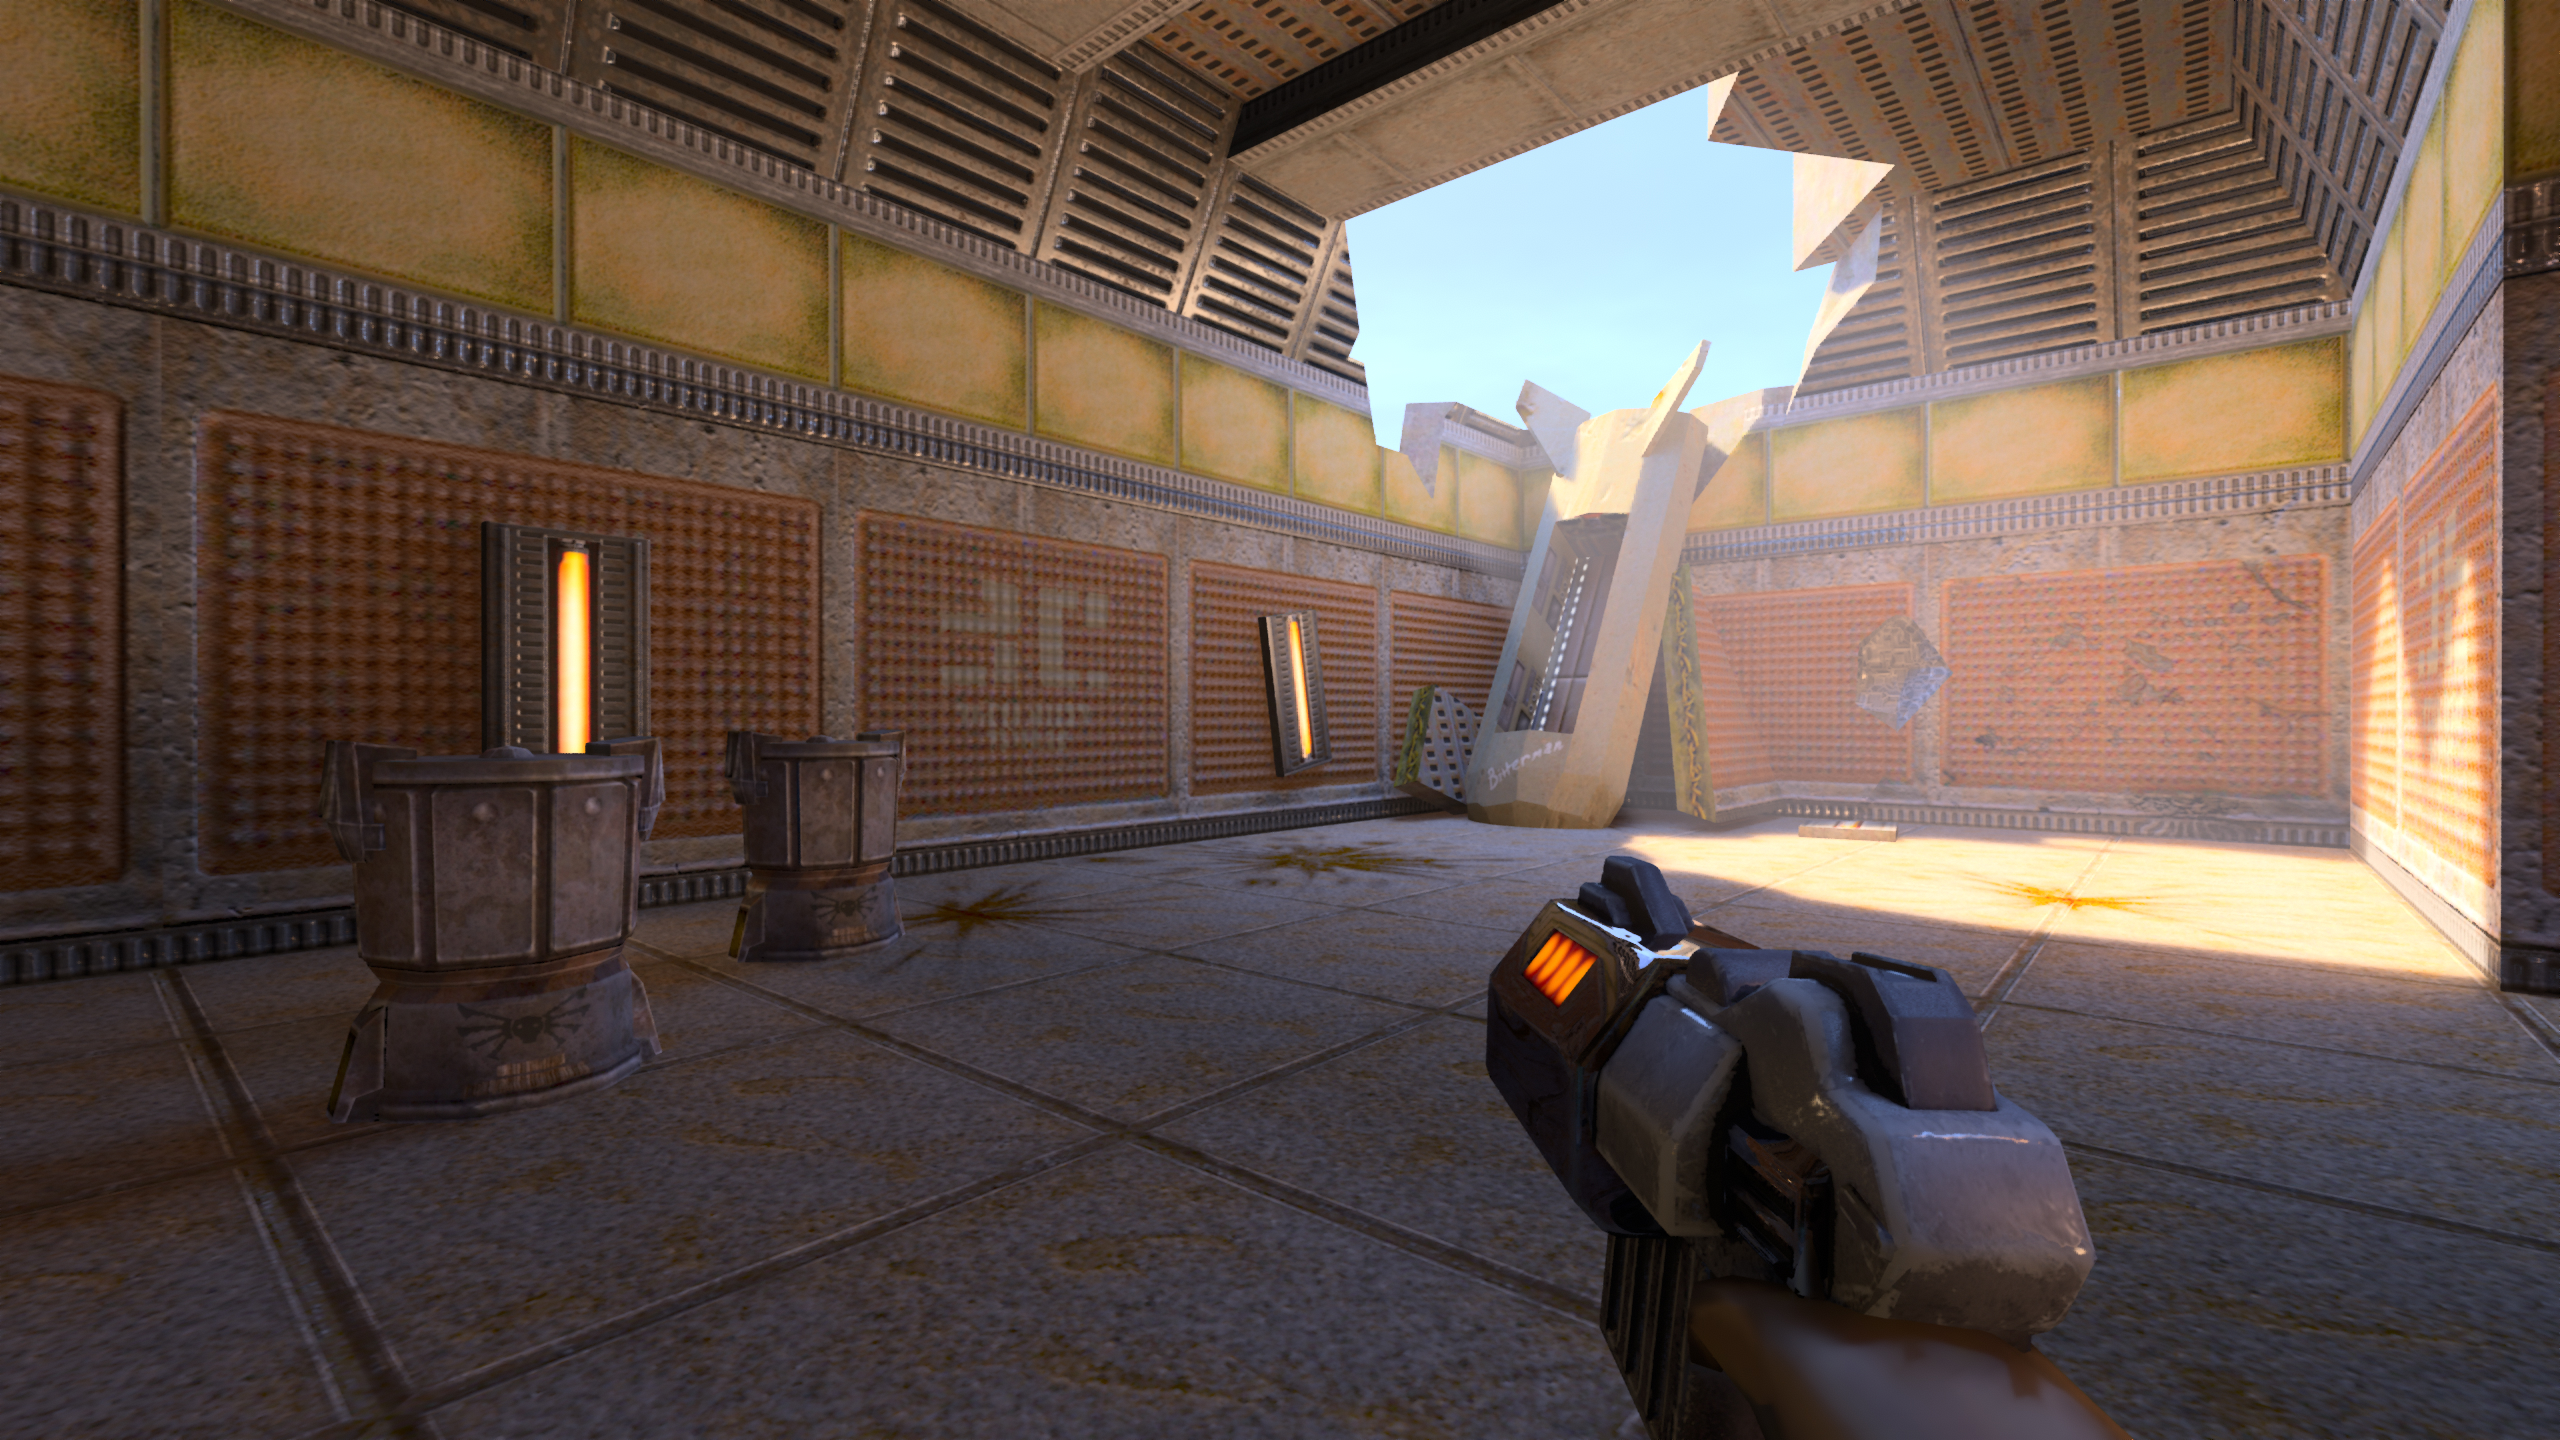 Nvidia is adding real-time ray tracing to Quake 2, and you